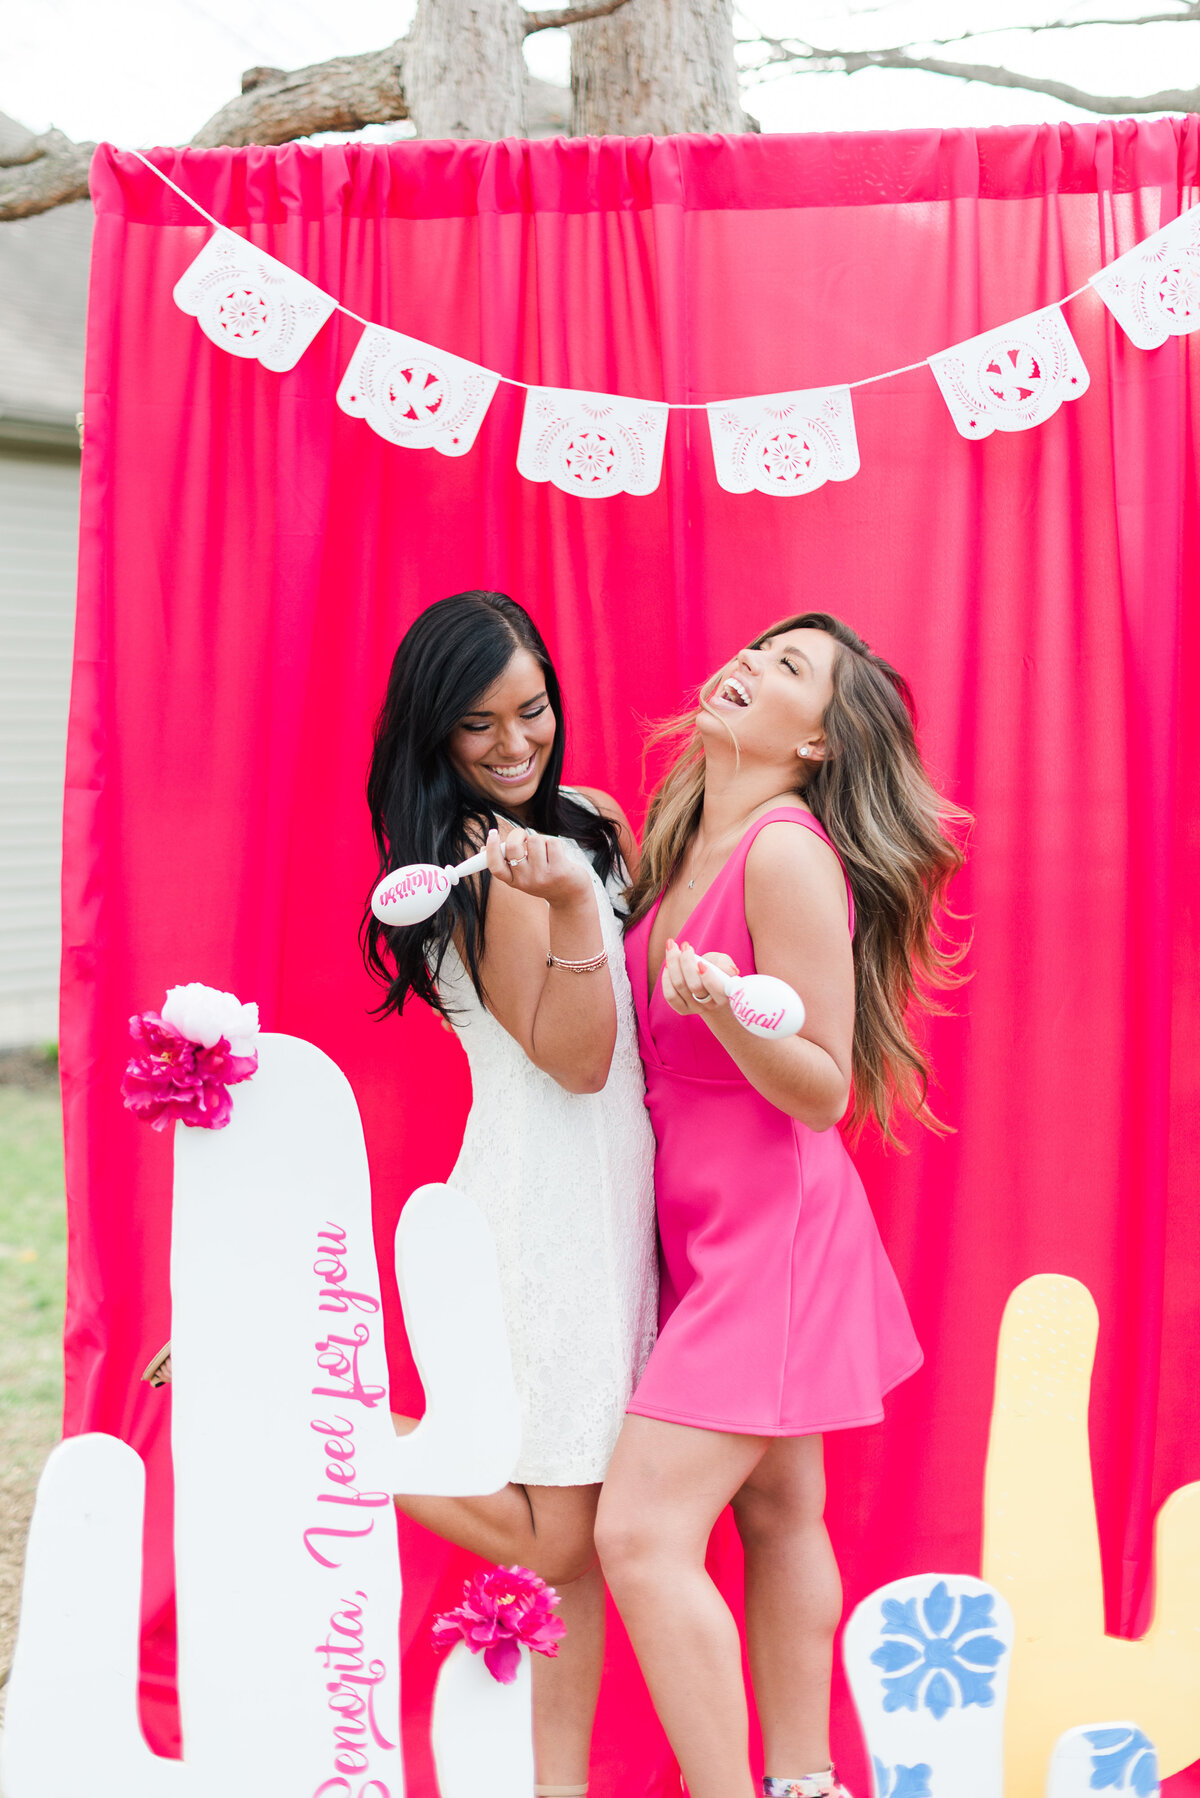 Fiesta-Party-Inspiration-by-Event-Prep-Cassandra-Clair-Photograpy-Amanda-Collins-88